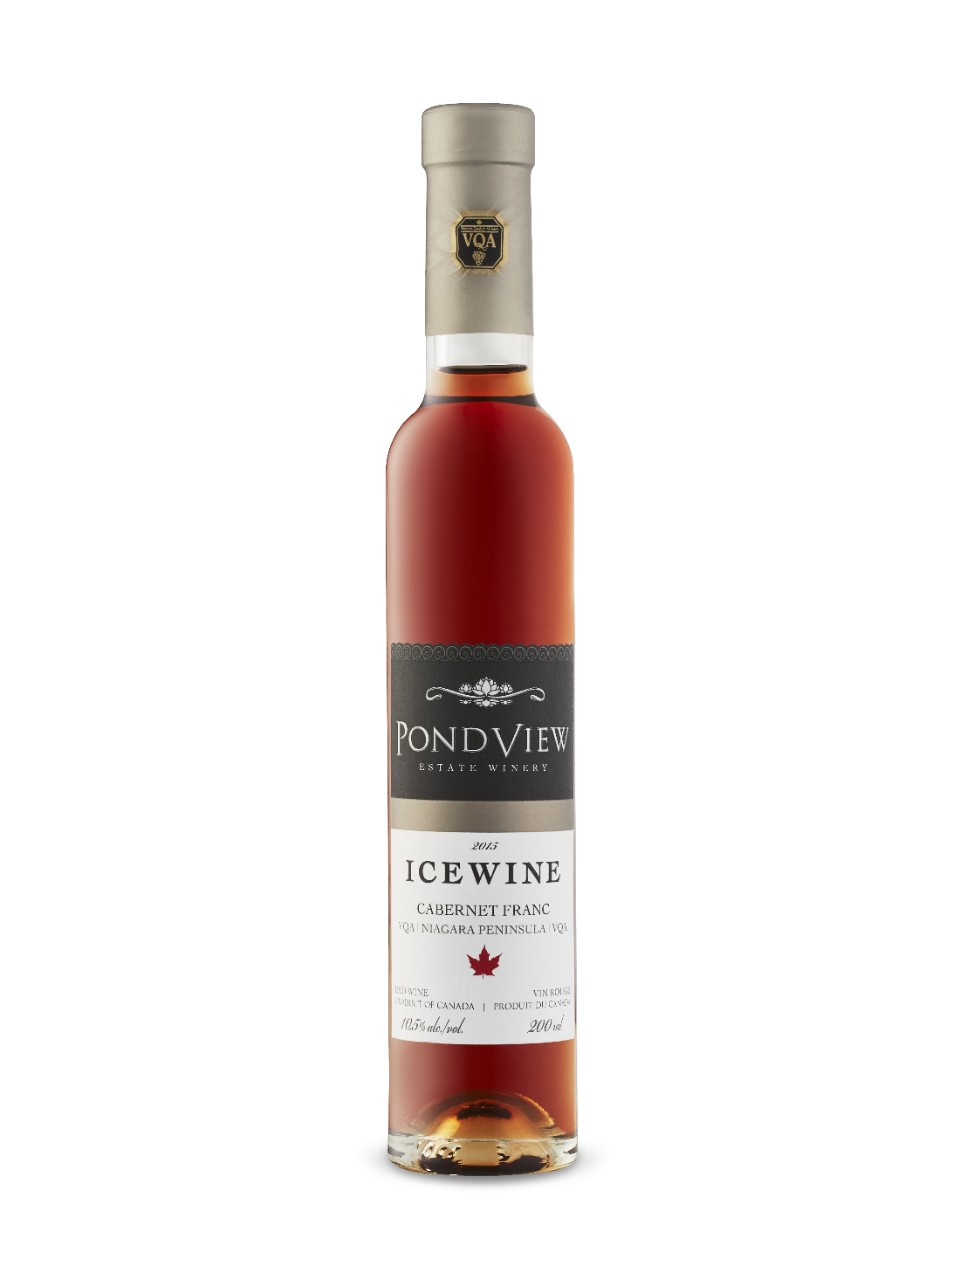 Image for Pondview Cabernet Franc Icewine 2014 from LCBO